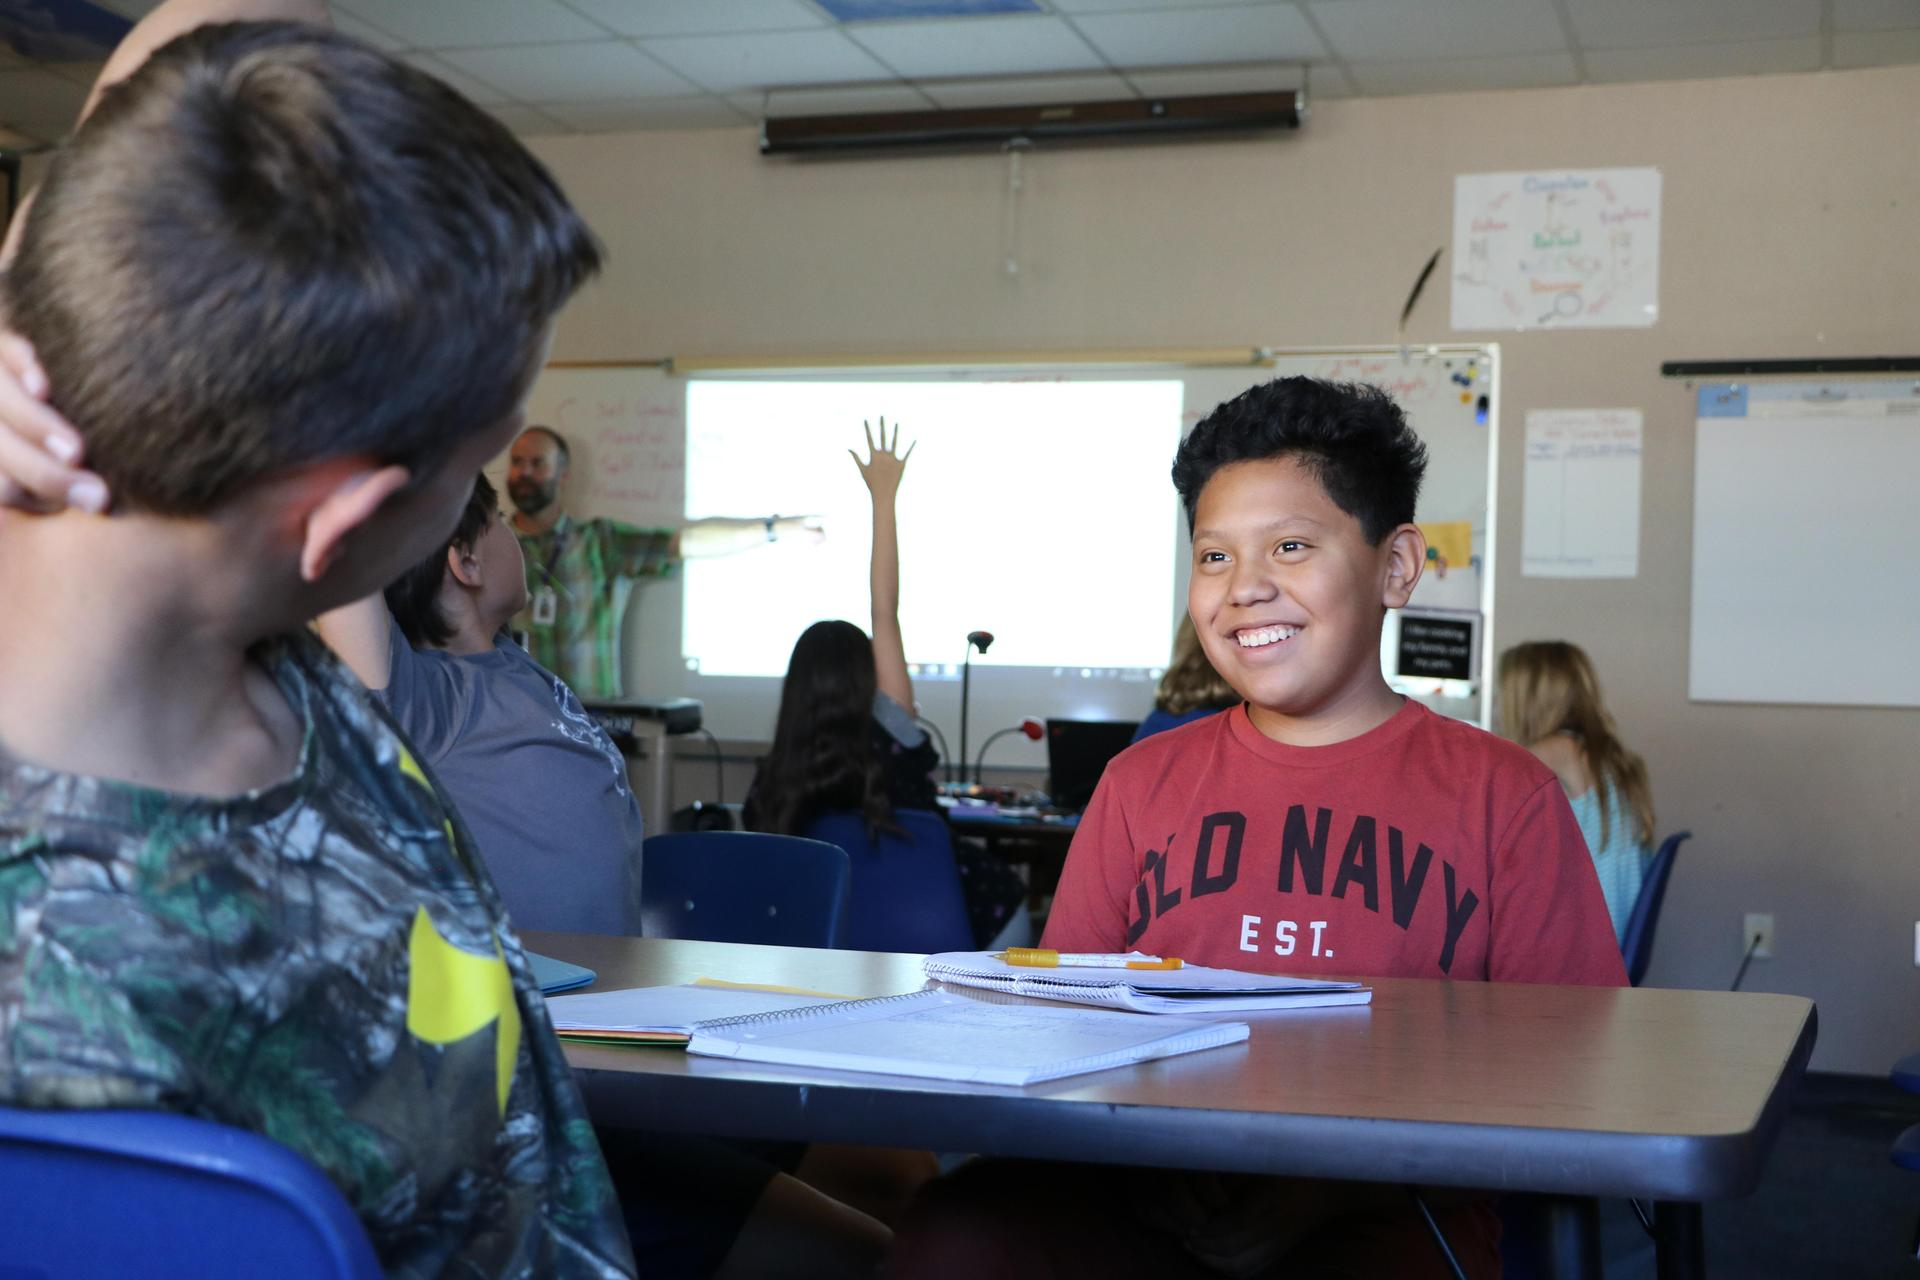 A student smiles broadly at a classmate.